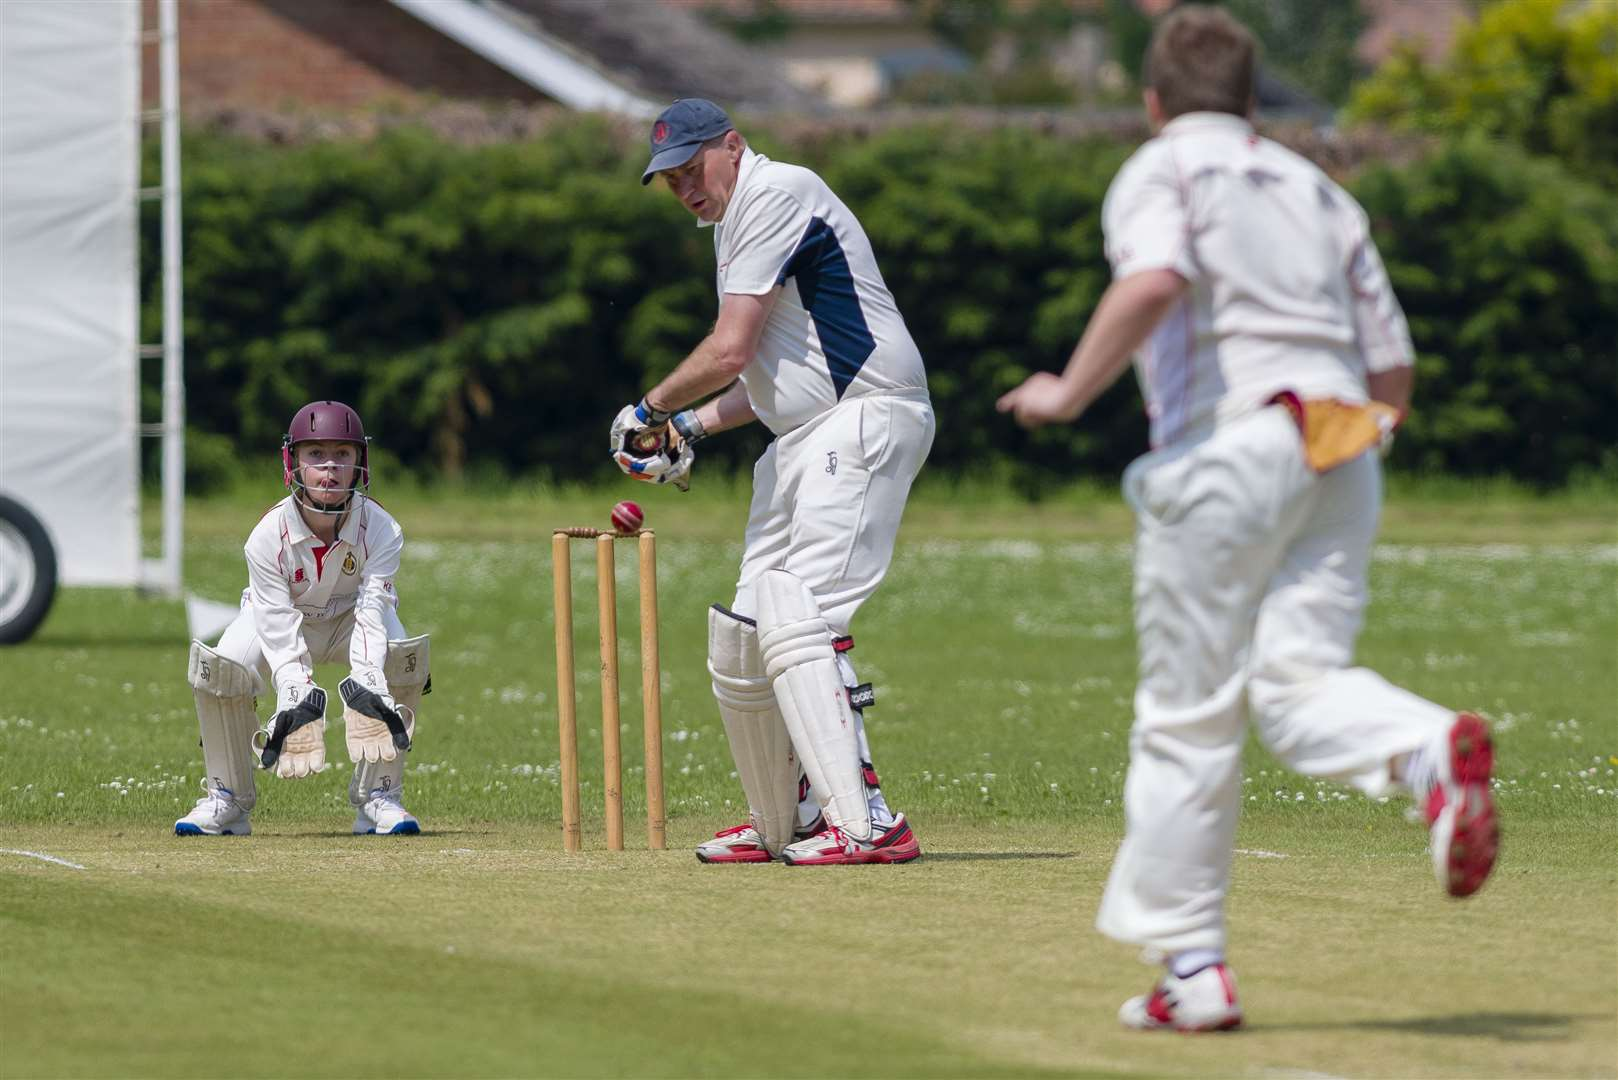 Stradbroke, Suffolk. Cricket action from Stradbroke vs Stowmarket II - Stradbroke in Bat - Michael Hugman. ..Picture: Mark Bullimore Photography. (34721369)